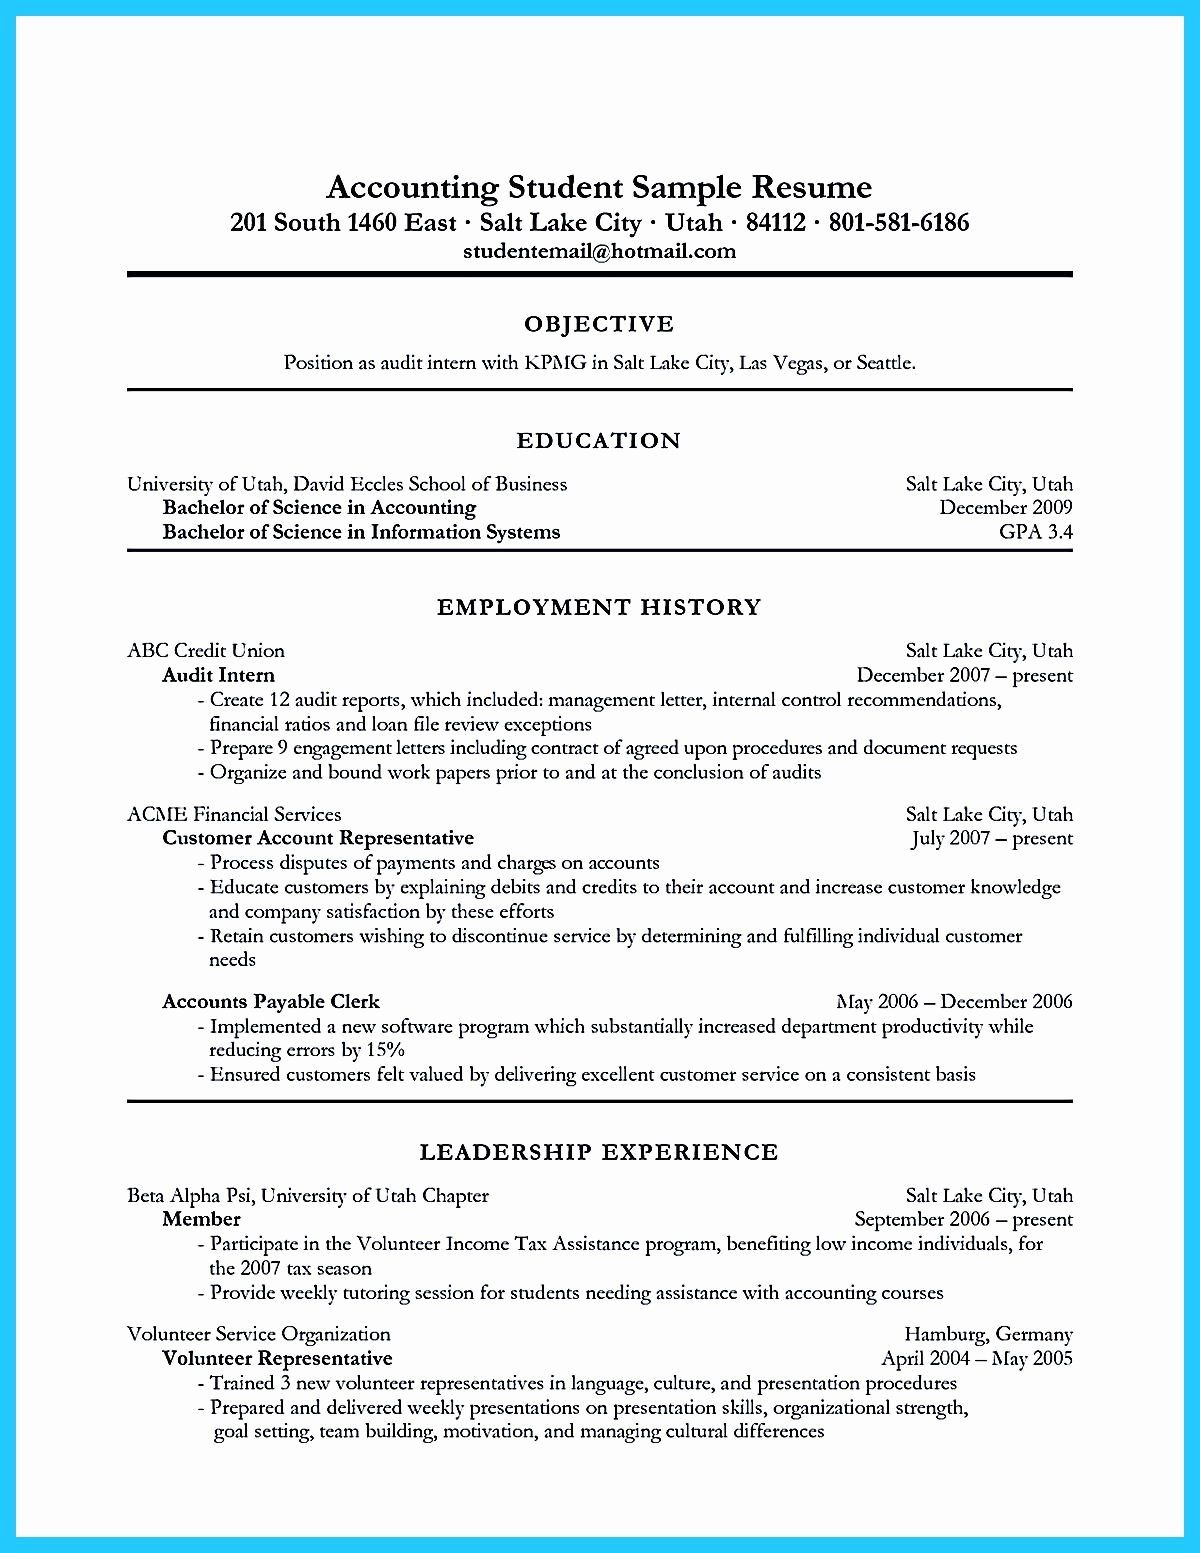 Resume for Accounting Internship with No Experience™ in